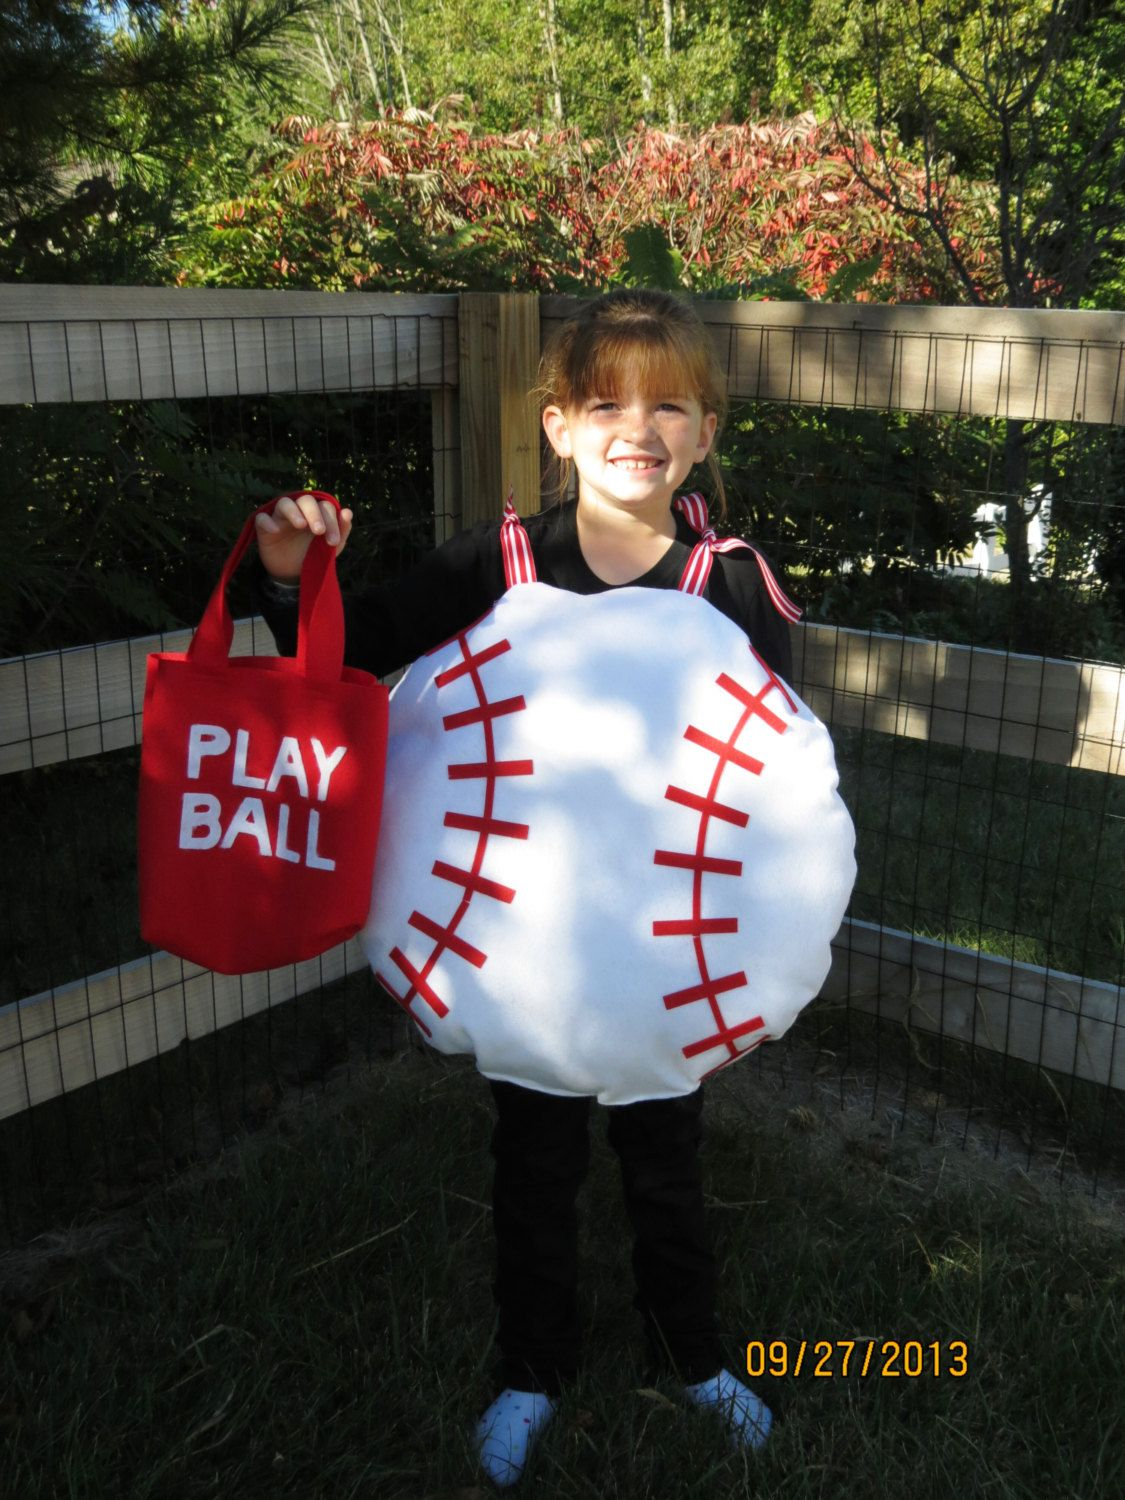 Handmade Fun Baseball  Ball  Halloween Costume W/ Trick-or-Treat bag. Chose from toddler kids or adult. by memoriesmadebyrose on Etsy  sc 1 st  Pinterest & Halloween Costume Handmade Fun Baseball